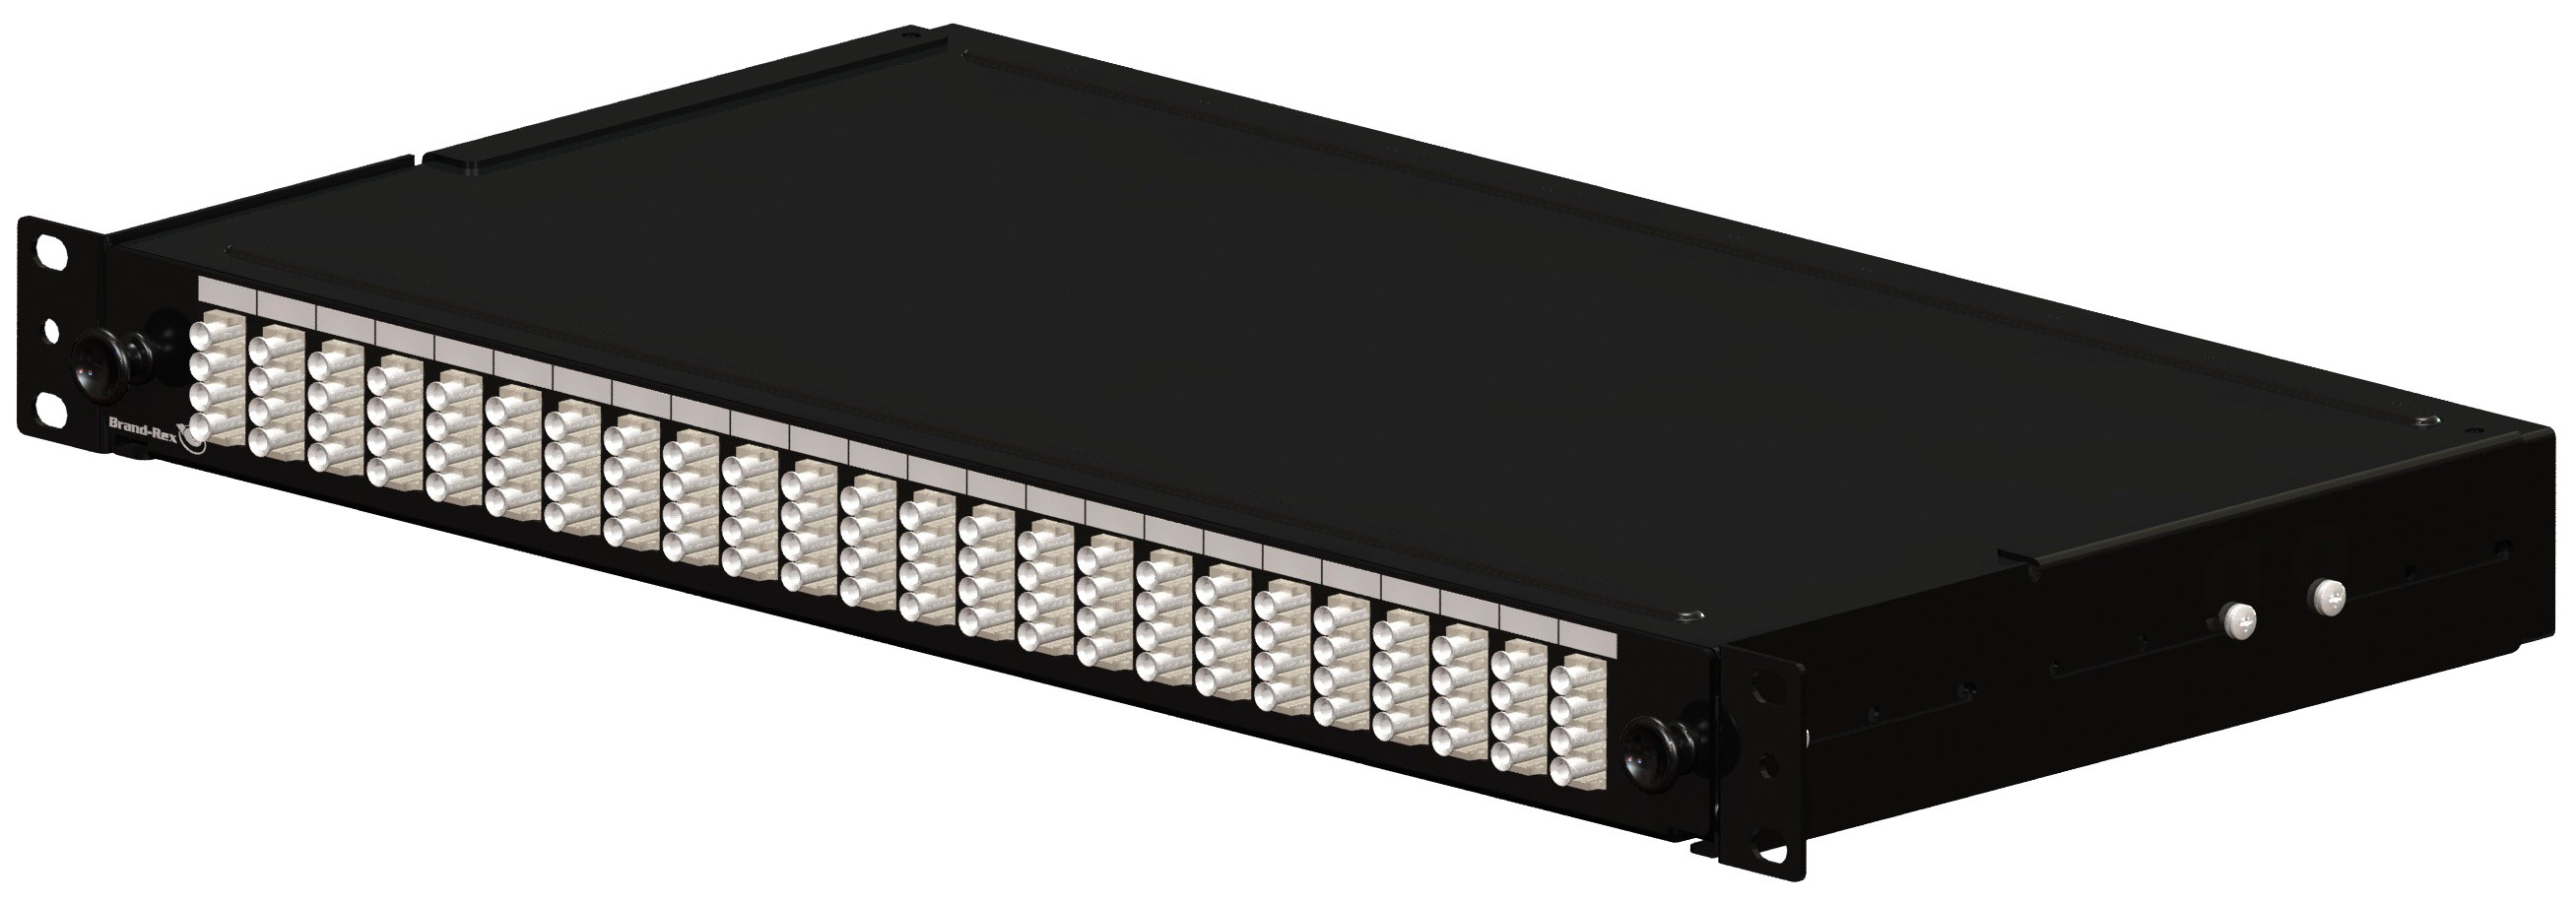 Brand-Rex Optical Panel loaded with 12 SC Duplex Singlemode adapters